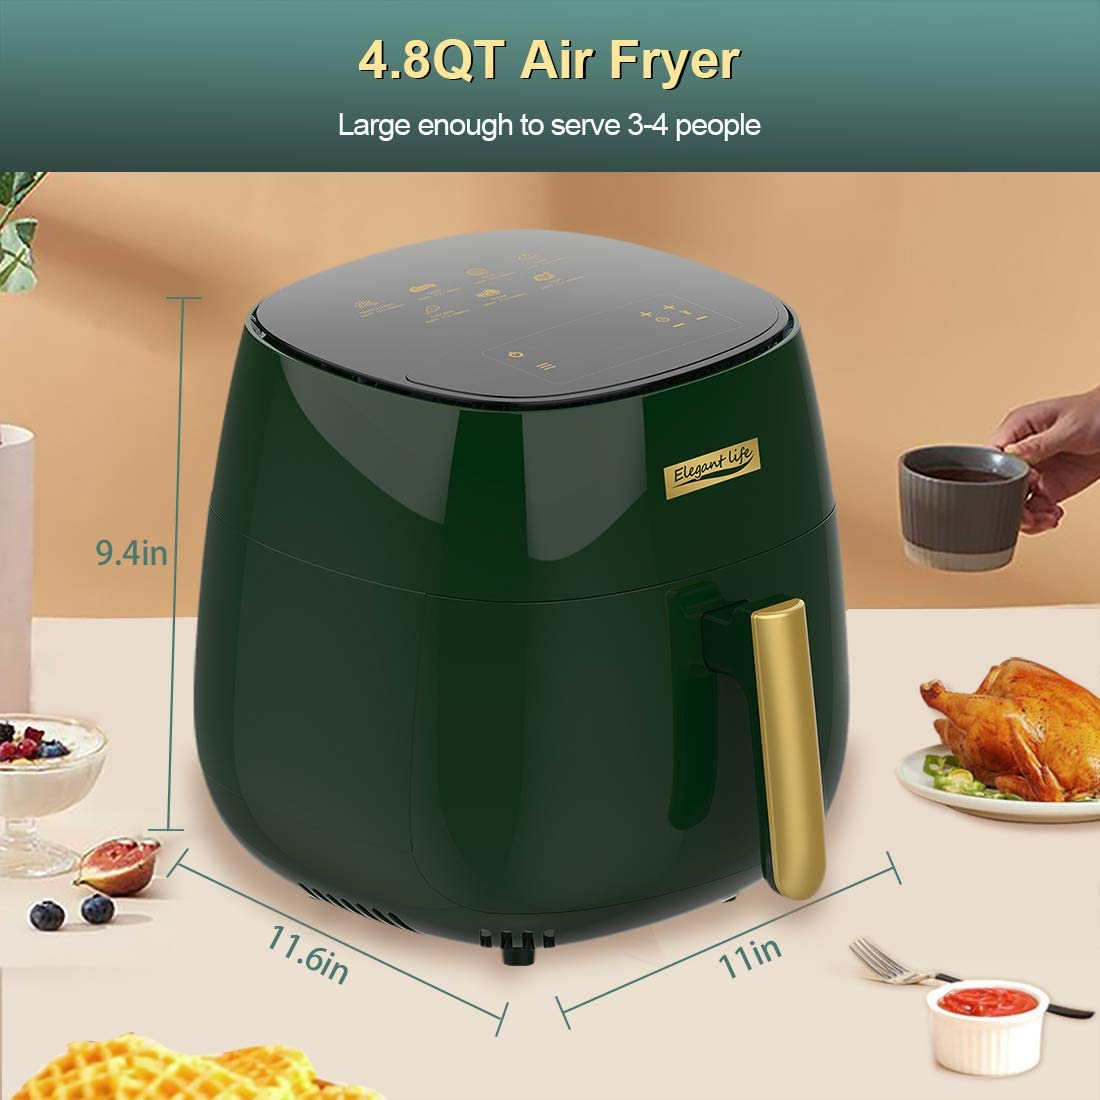 Nonstick Basket Oil Free Hot Cooker BPA/&PFOA Free Elegant Life 4.5 L Air Fryer Oil Free 7 in 1 with Recipes Cookbook 1400W LCD Touchscreen Air Oven Cooker